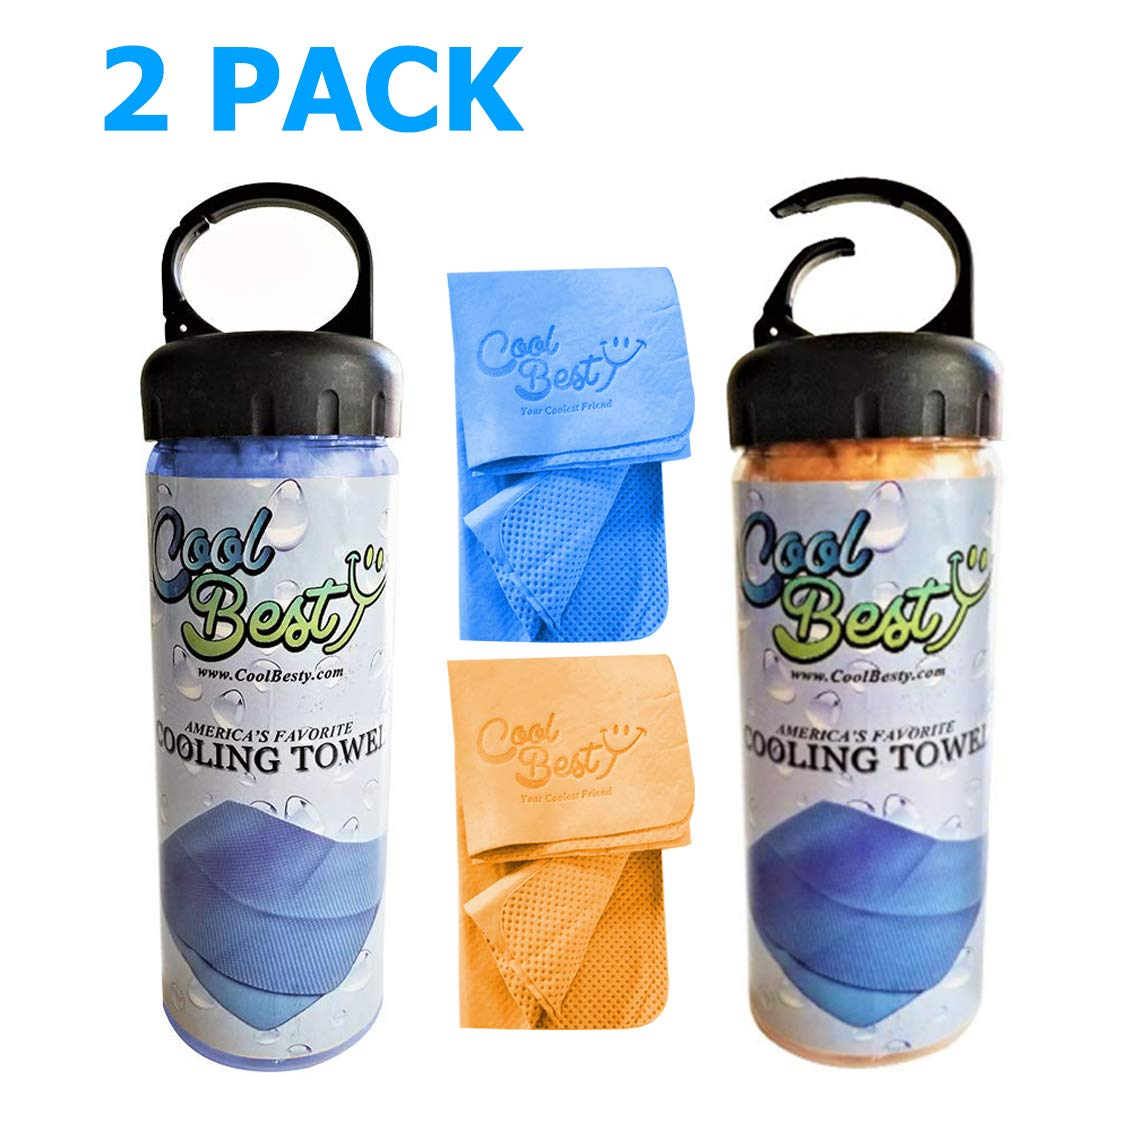 Cool Besty 2 Pack-Blue/Orange - Cooling Towel-Workout/Tennis/Golf/Biking-Best for Any Sport Activities&Athletes Cold Towel-Chilly Pad Instant Cooling Snap Towel-Perfect for Fitness&Gym